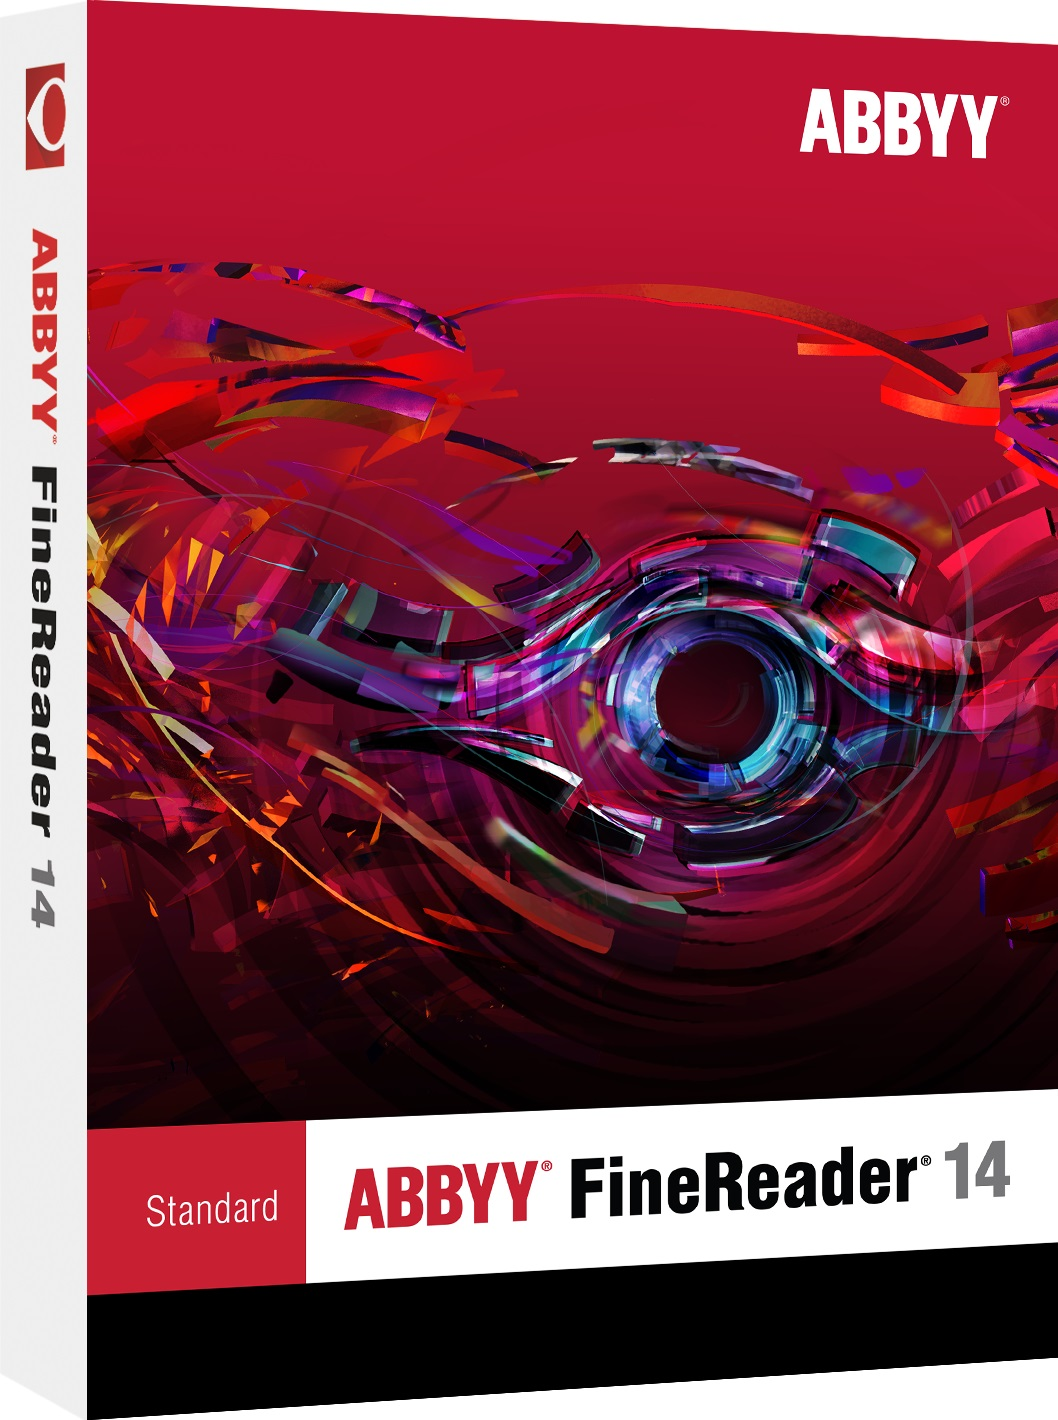 abbyy-finereader14-box-l-rgb.jpg